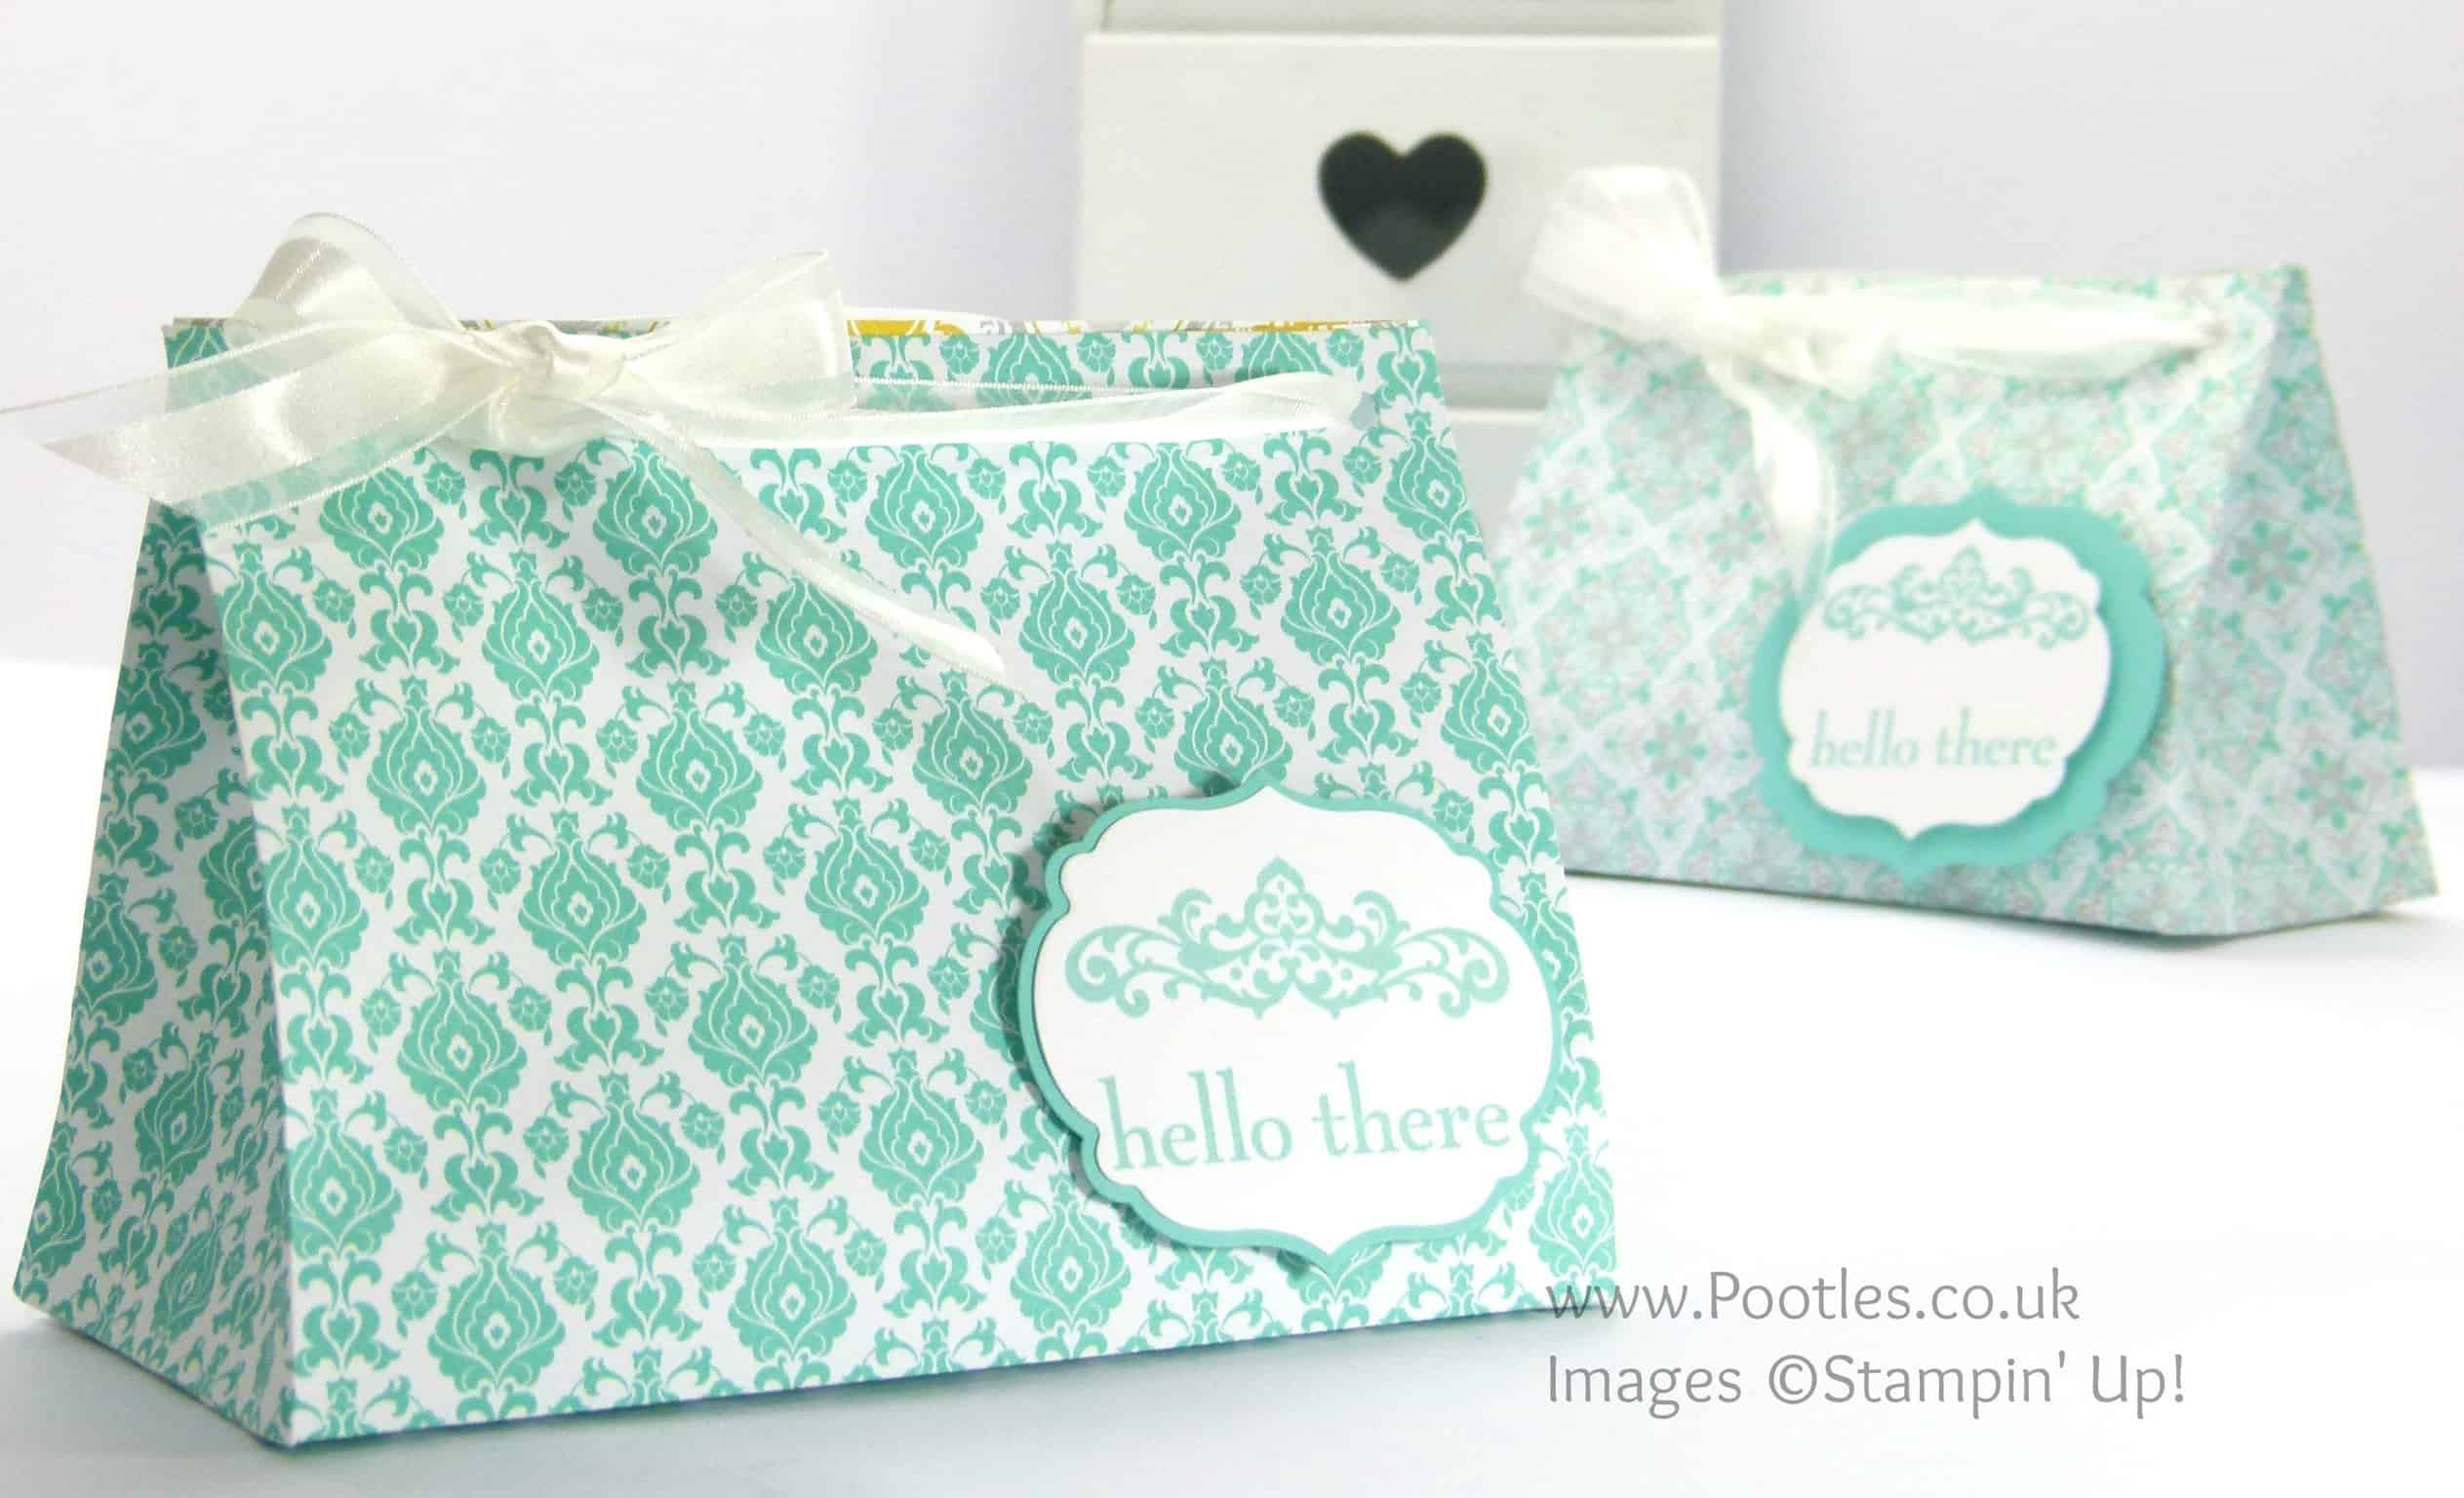 Stampin' Up! UK Demonstrator Pootles - Wide Fat Bag using Stampin' Up! UK Eastern Elegance DSP